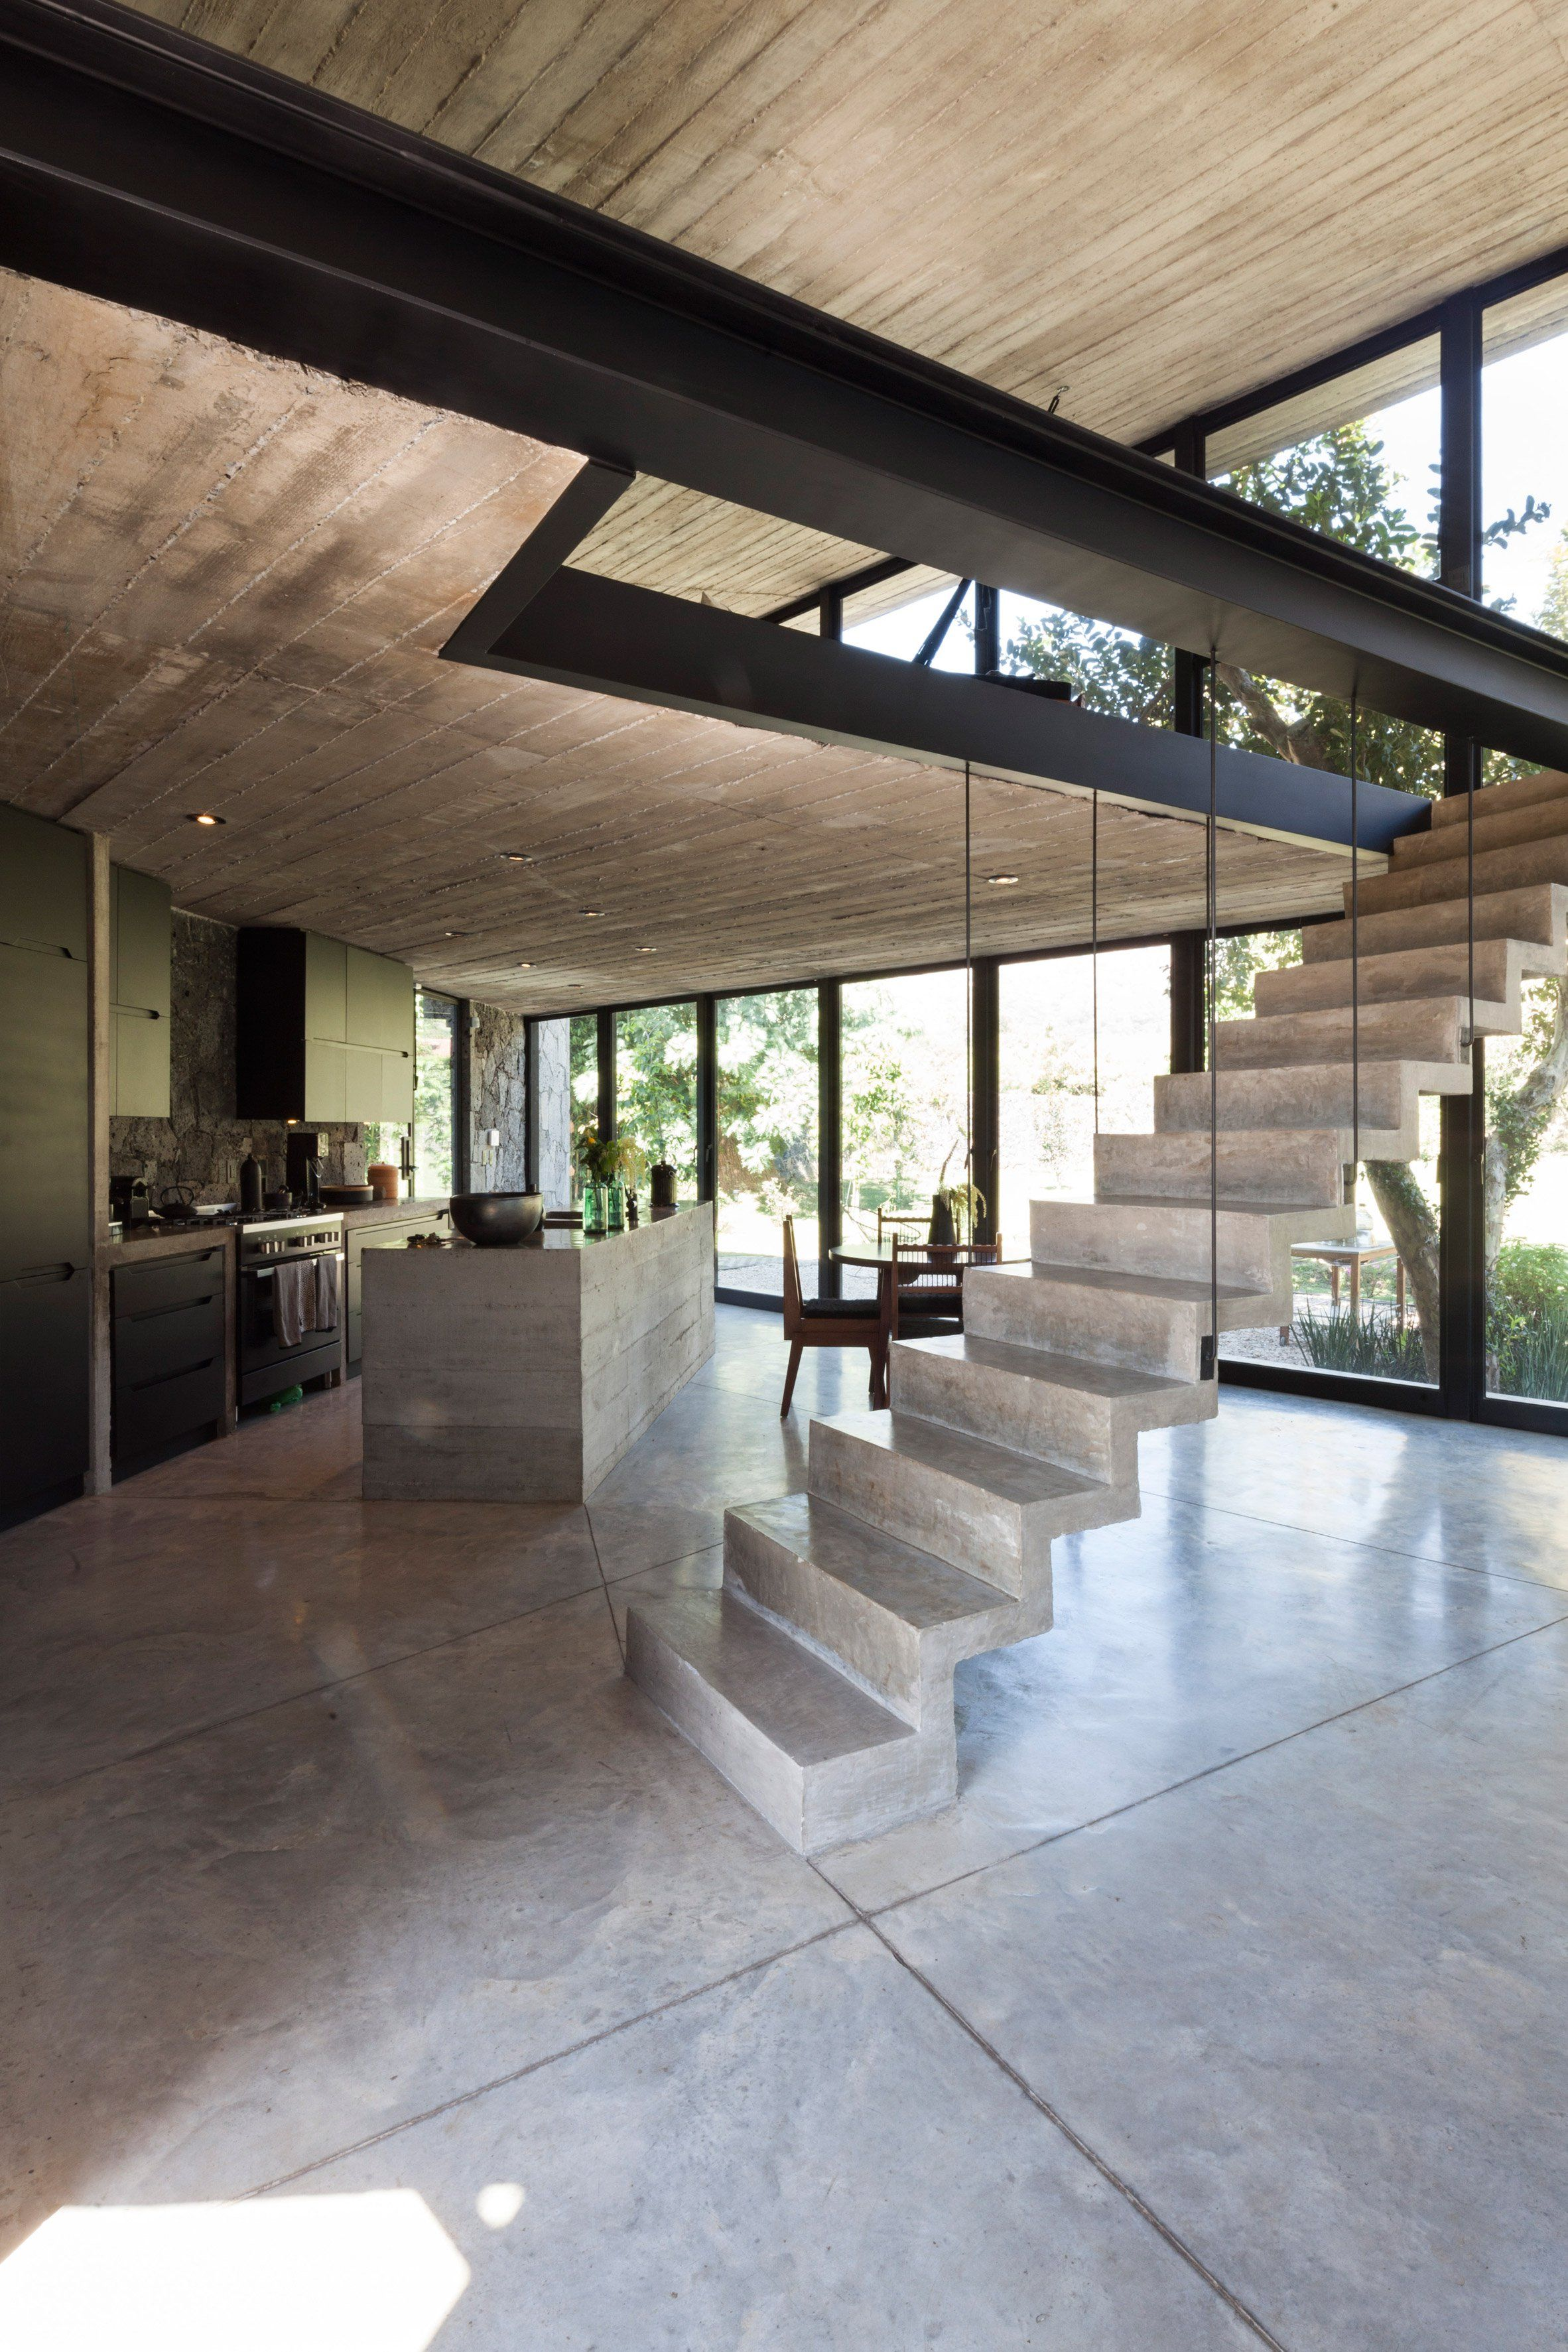 Ma house by cadaval sola morales stone houses mezzanine modern staircase design also the best interiors images on pinterest in contemporary rh